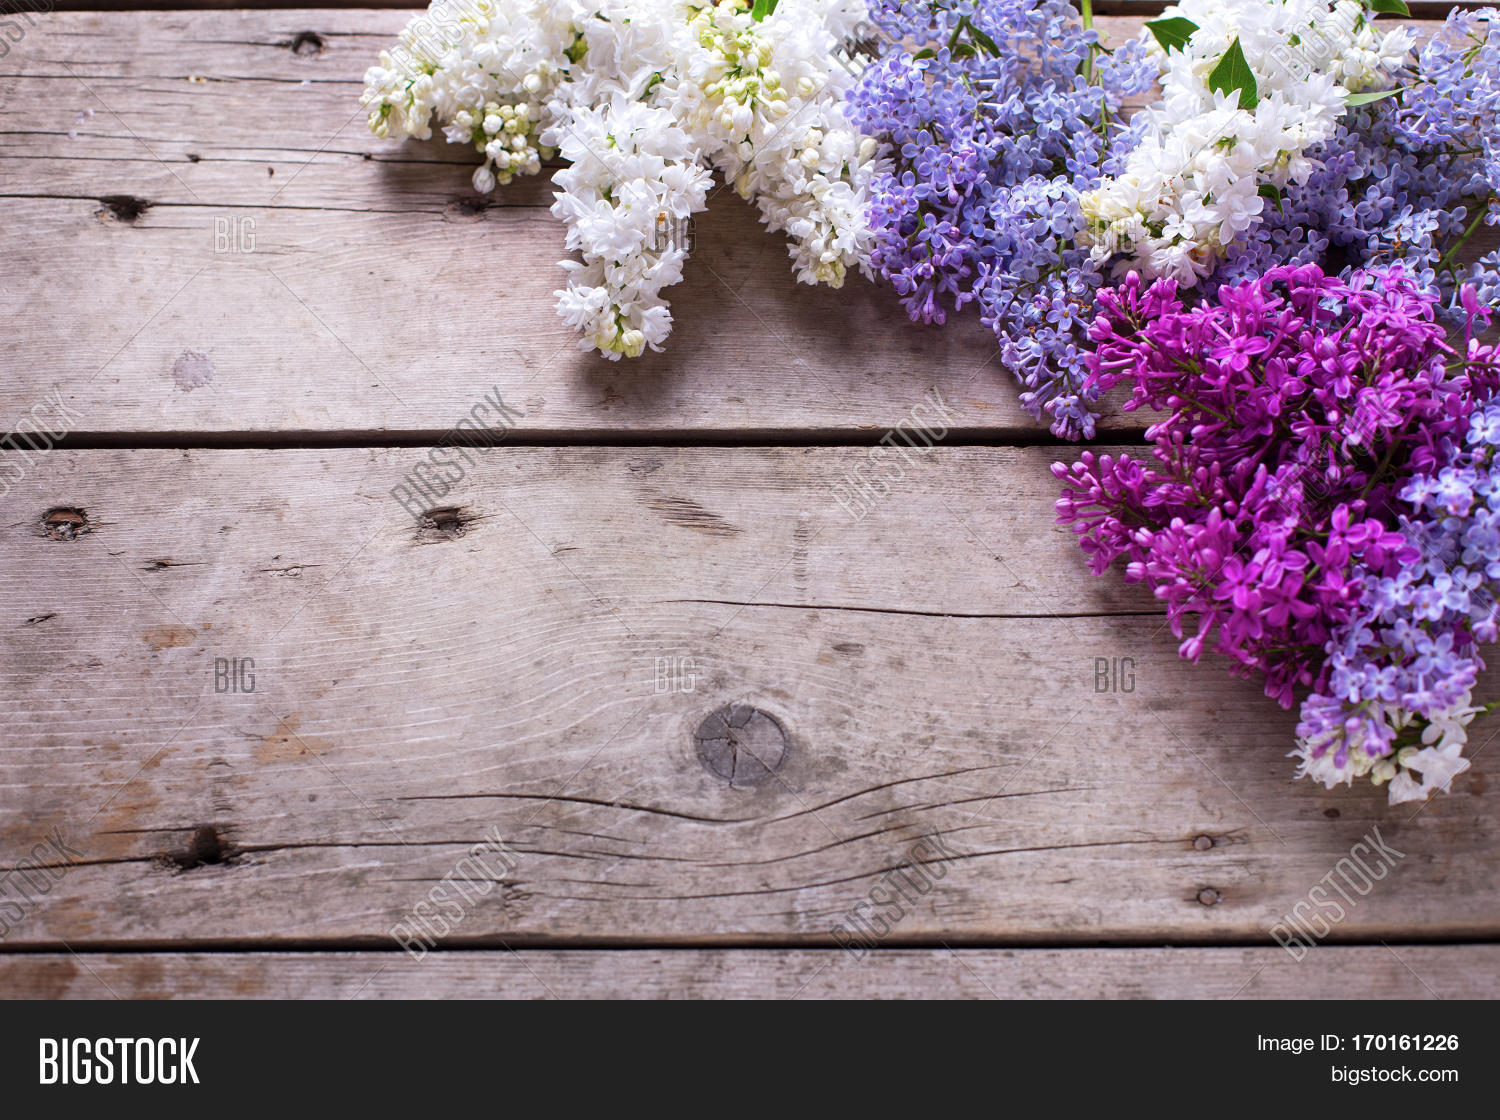 Spring Floral Image Photo Free Trial Bigstock